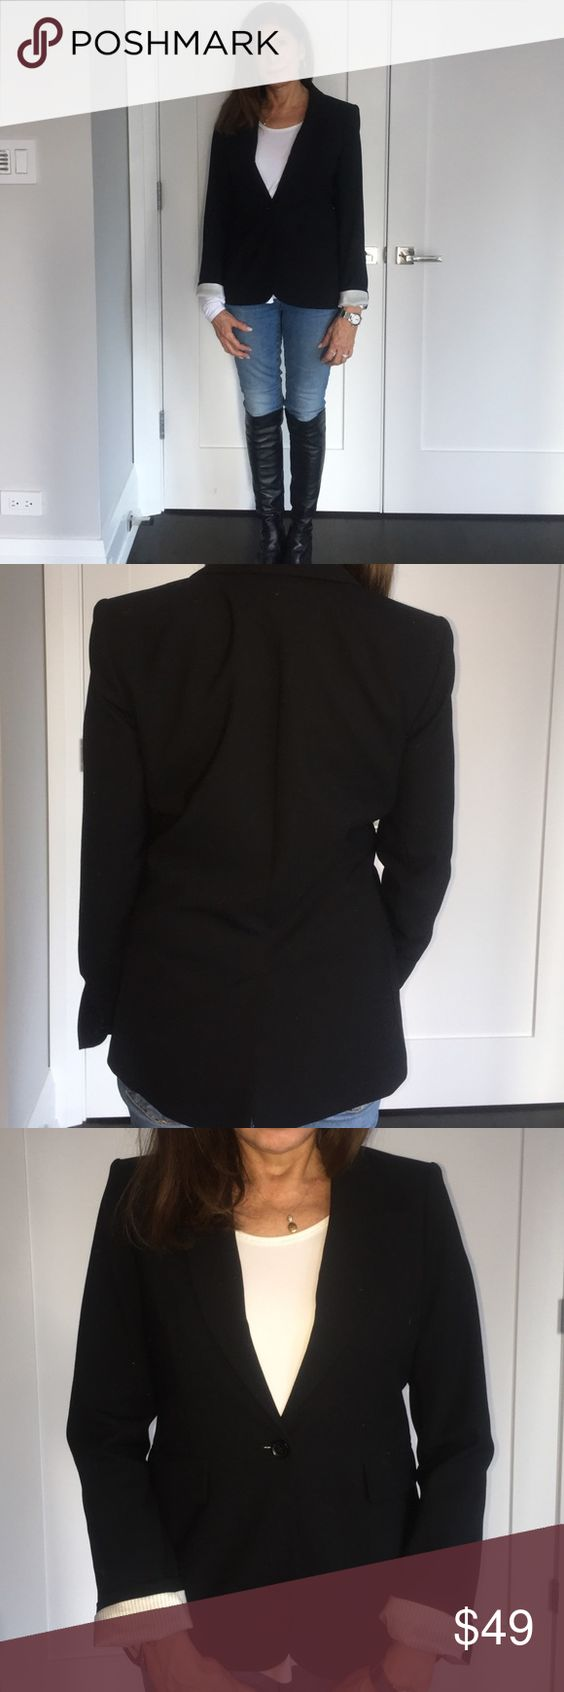 Black Wool Blazer Silk Lined Black Wool Blazer with 5% Spandex. Turn up the Cuff and Display the Black and White Silk Pinstriped Pattern.  One Button Front Closure. Pure Casual Elegance. A Wardrobe Staple! Banana Republic Jackets & Coats Blazers